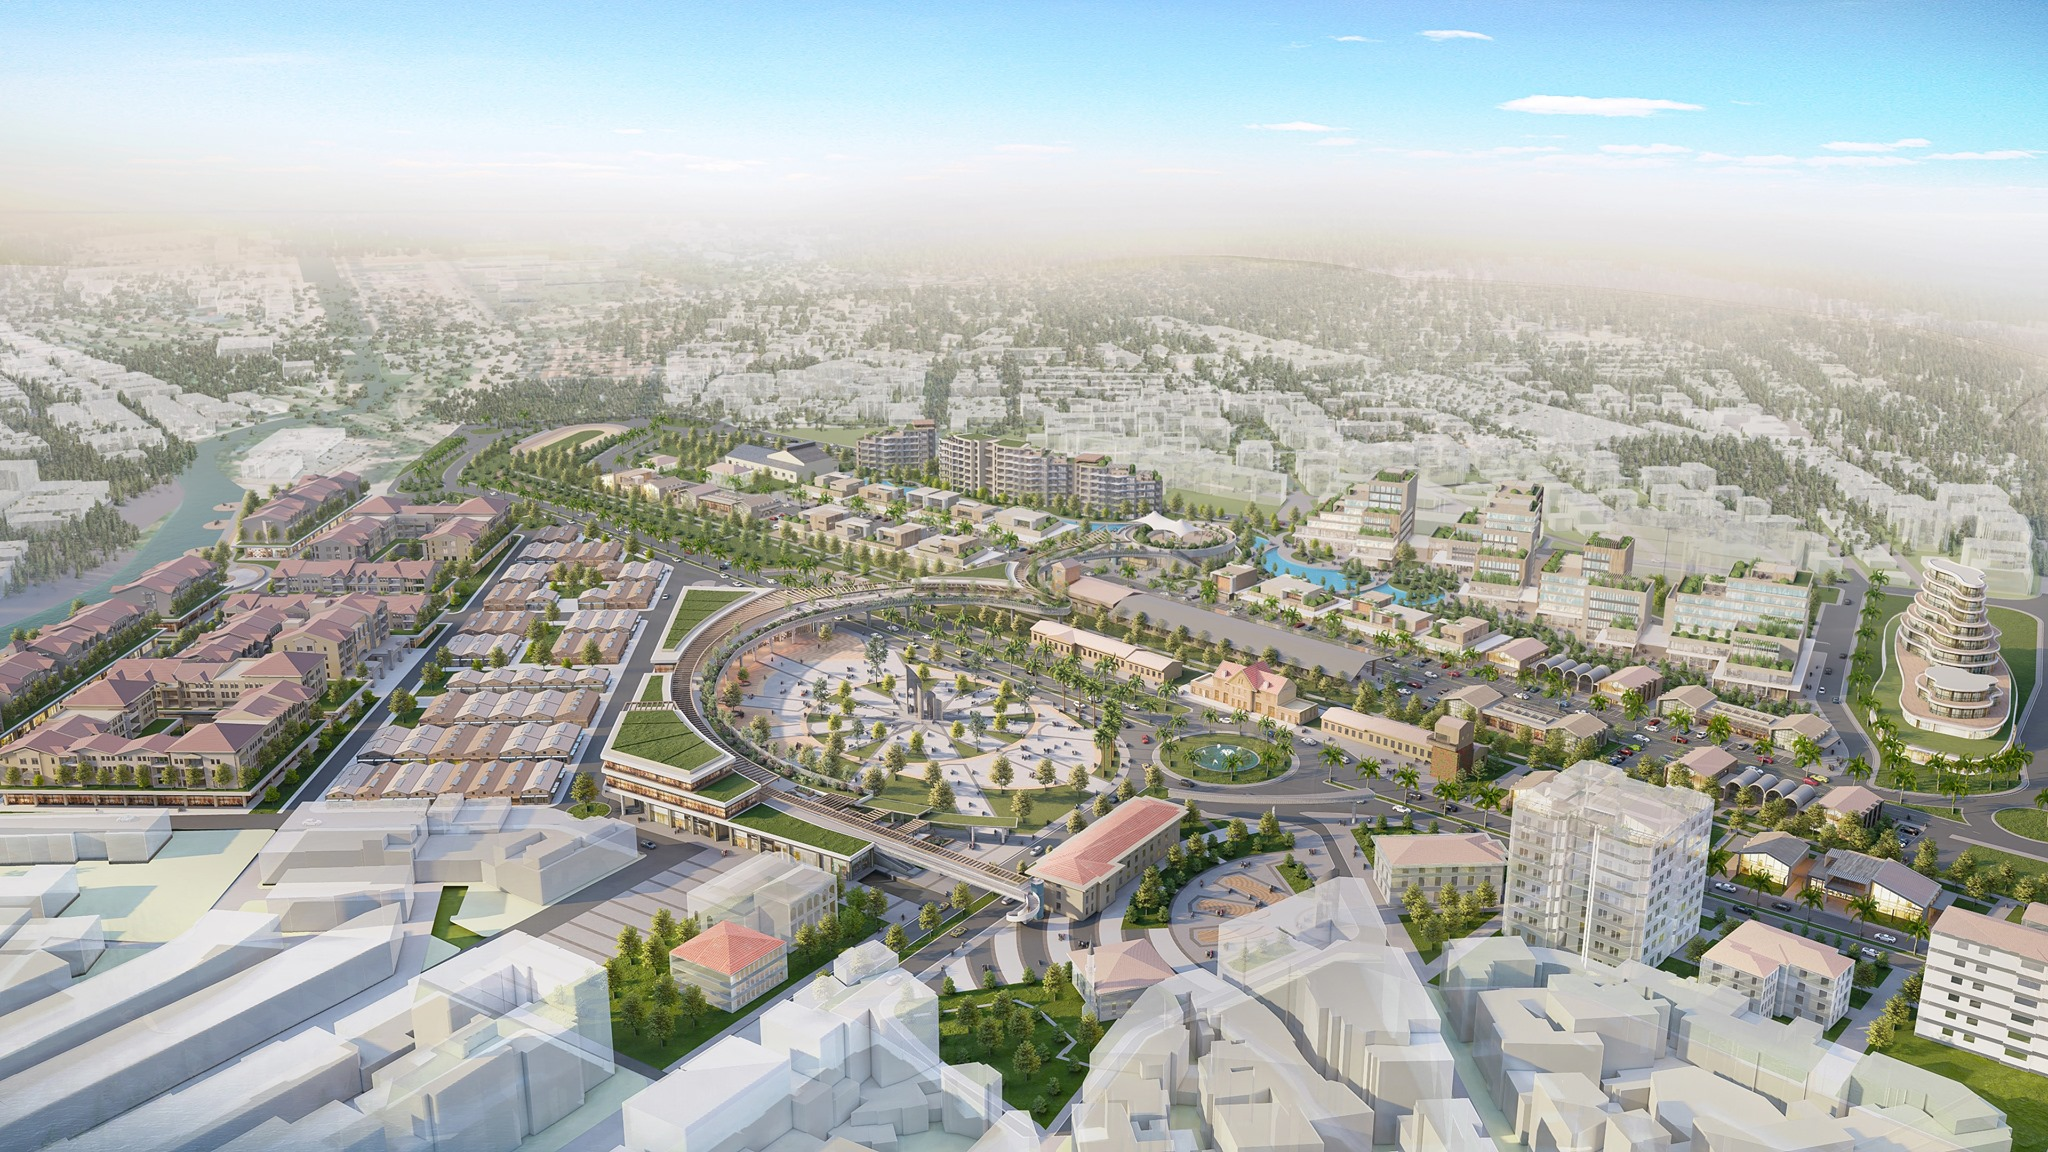 City Center visualization, rendered in Lumion 11 by Fatih Ekşi.  Project Evrenol Architects